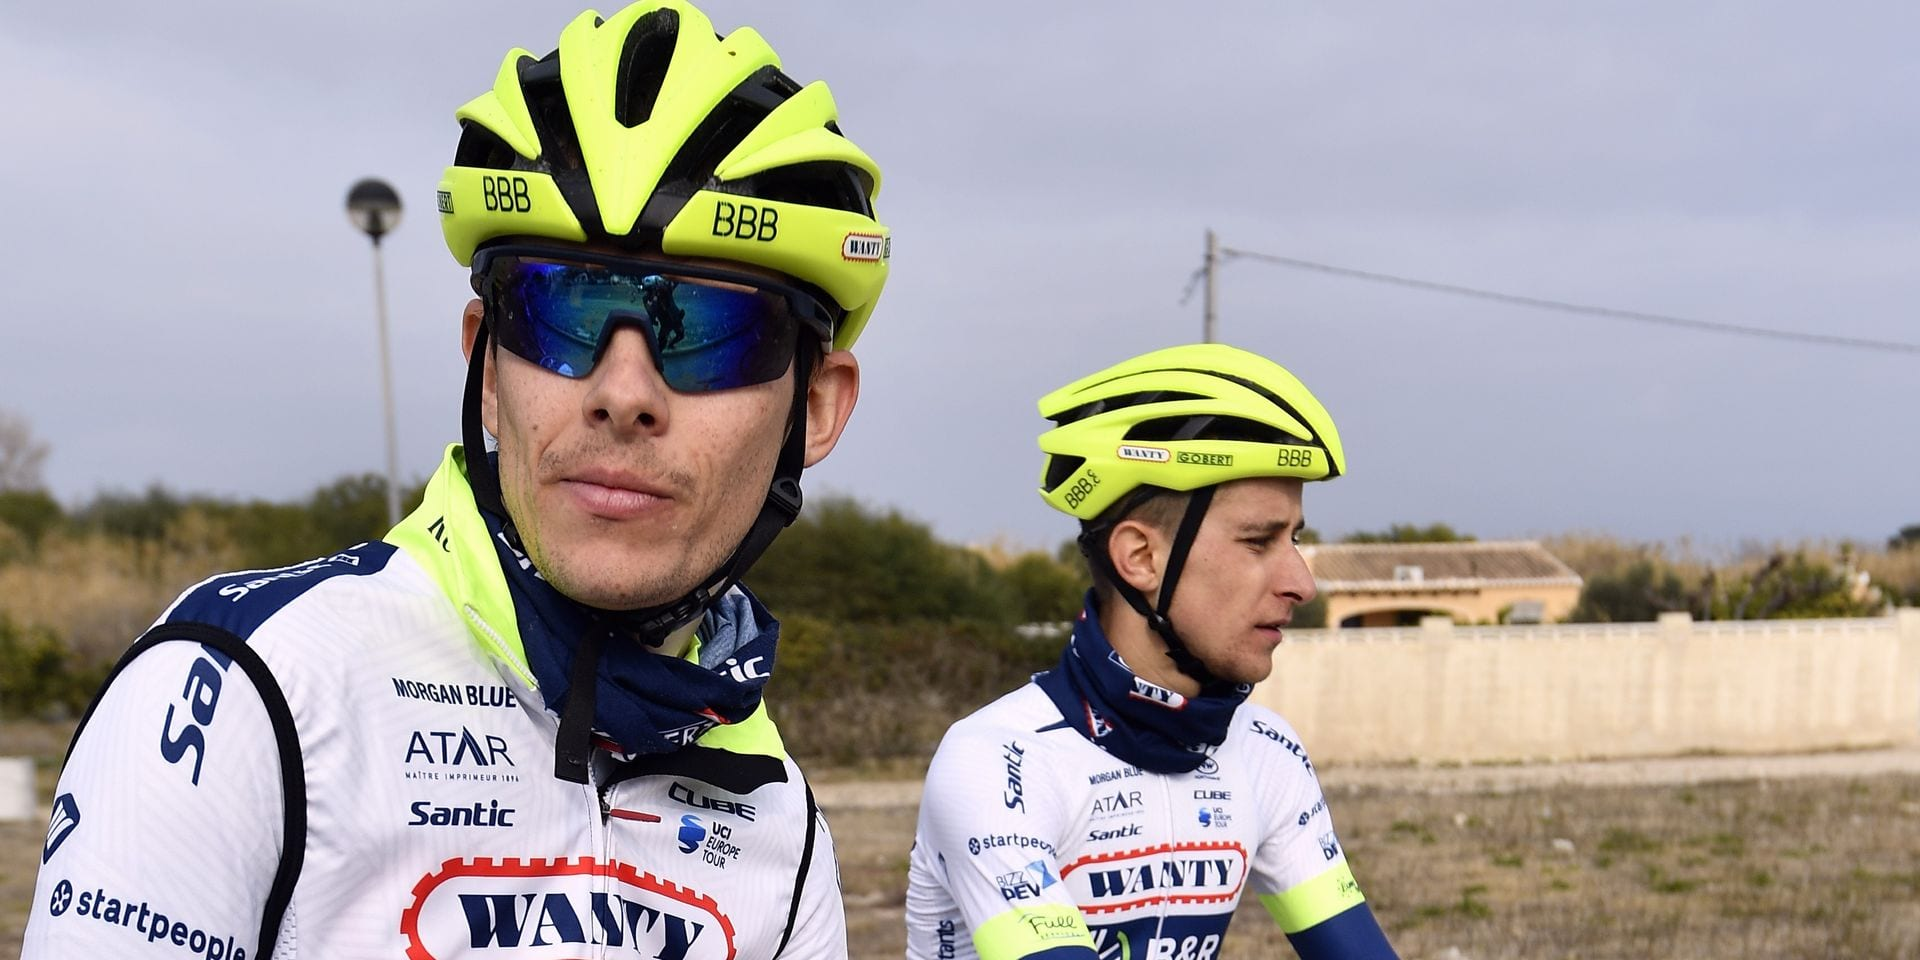 French Guillaume Martin of Wanty-Groupe Gobert and French Fabien Doubey of Wanty-Groupe Gobert pictured during the second day of the press trip organised by Belgian cycling team Wanty-Groupe Gobert, during their winter stage in Altea, Spain, Thursday 17 January 2019. BELGA PHOTO ERIC LALMAND